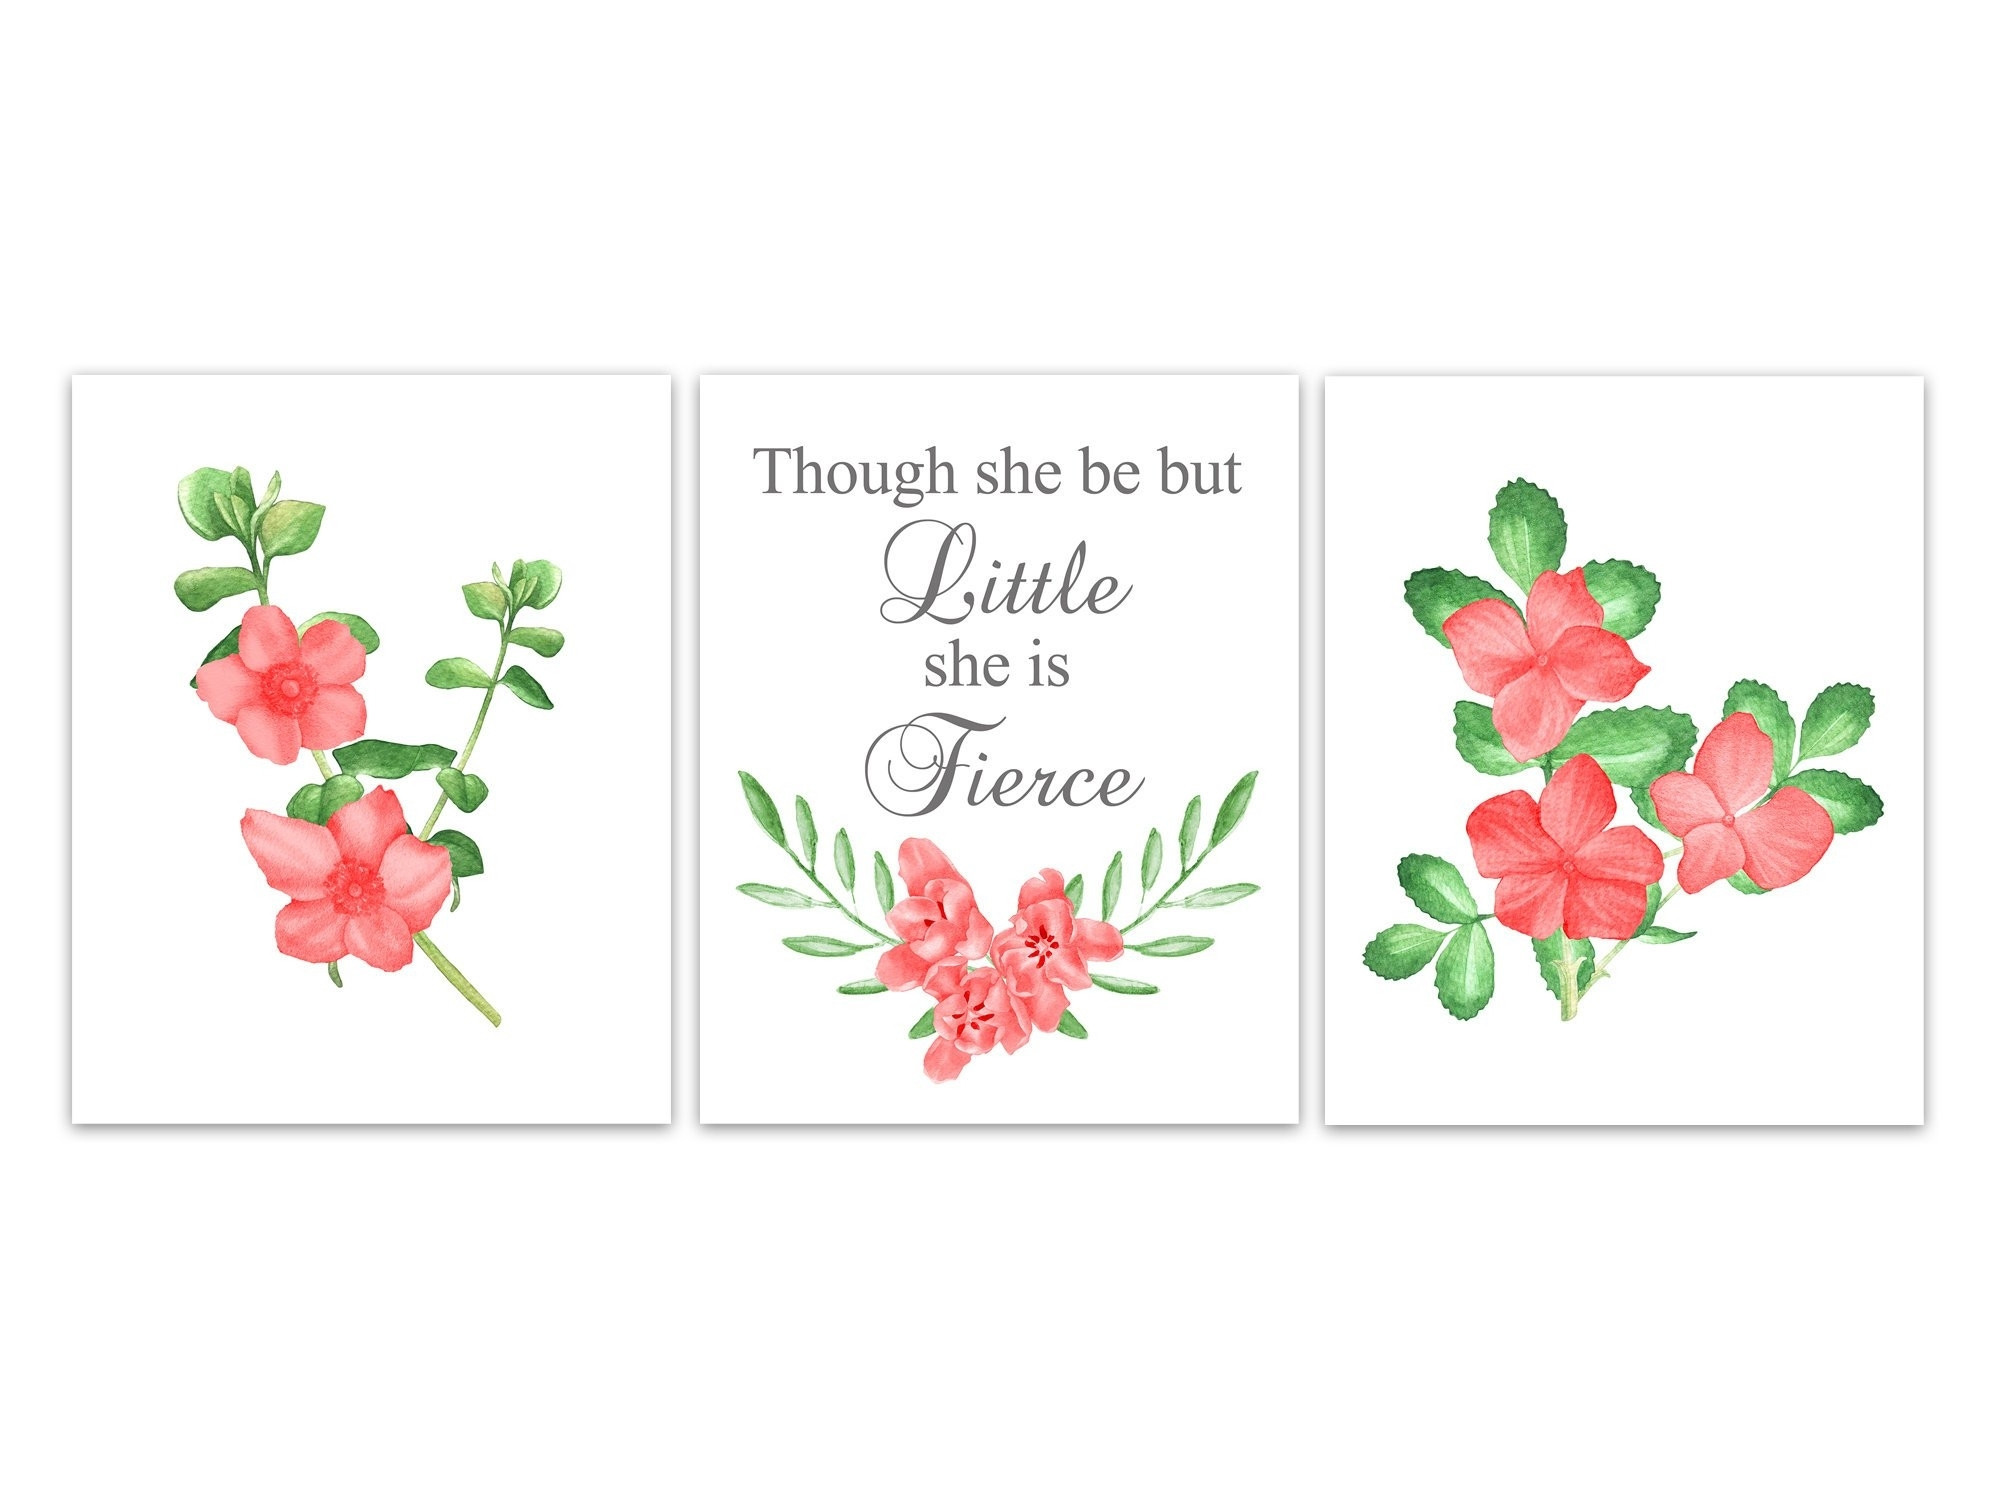 Though She Be But Little She Is Fierce Nursery Quote Art, Coral And Pertaining To Though She Be But Little She Is Fierce Wall Art (View 15 of 20)